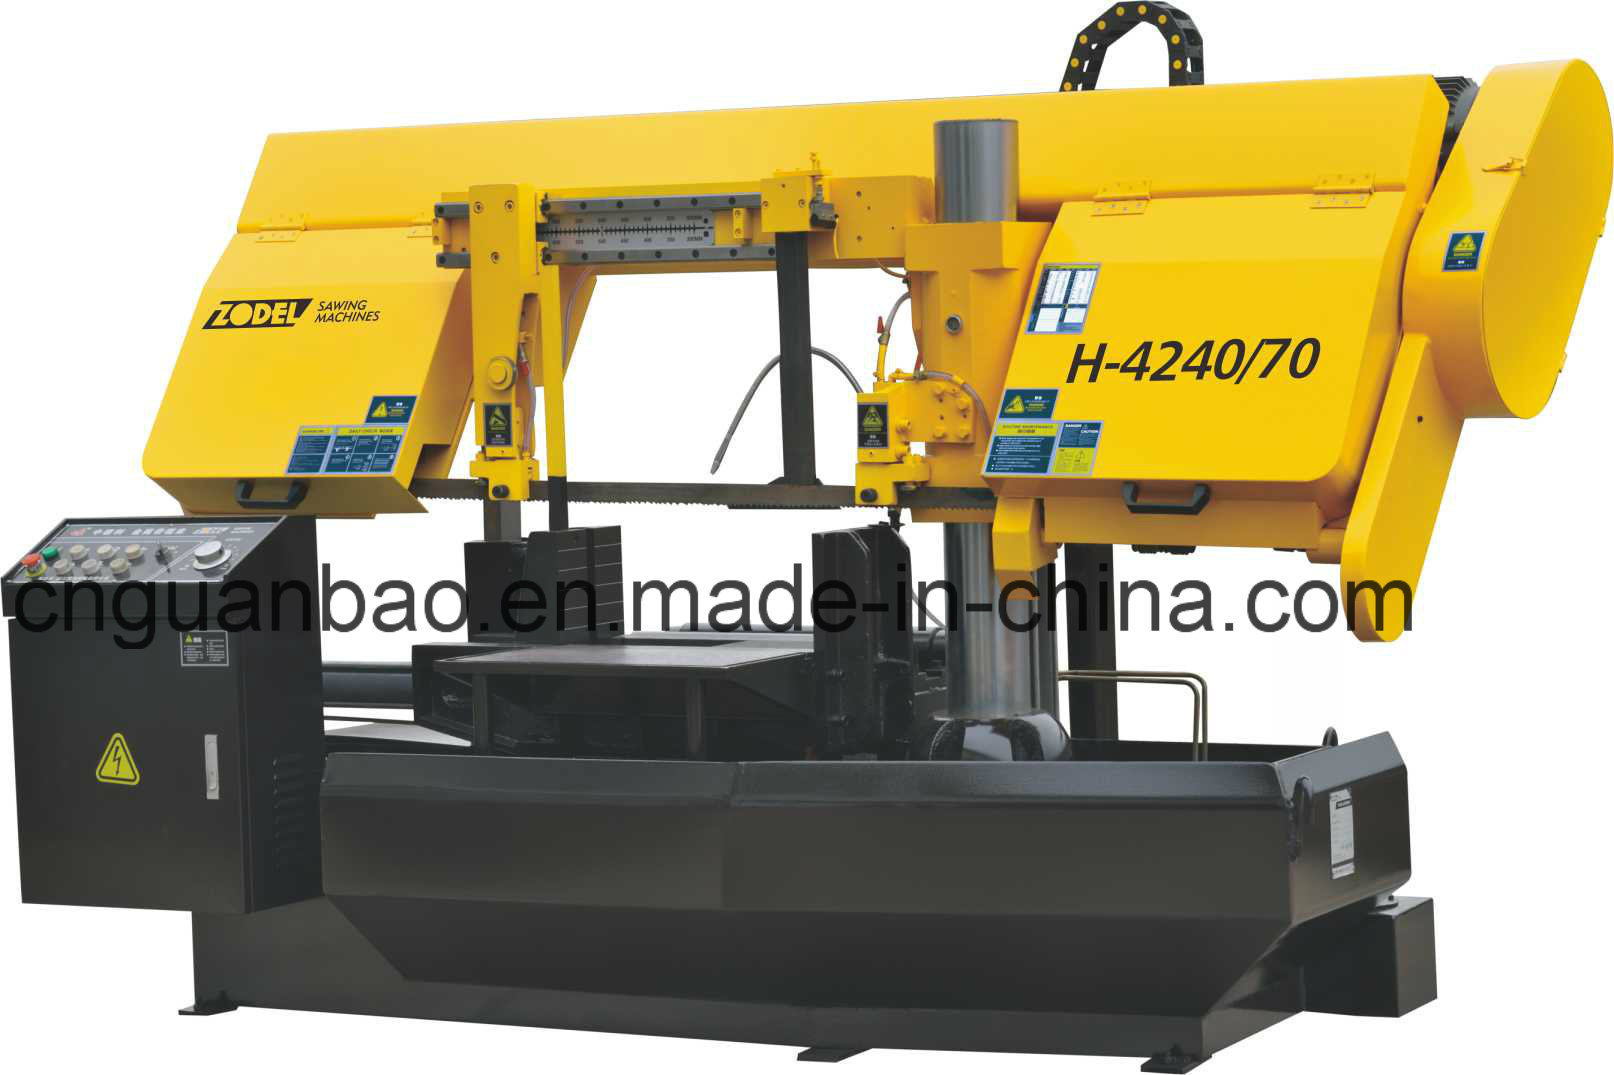 High Quality Band Saw Machine with Taiwan Spare Parts